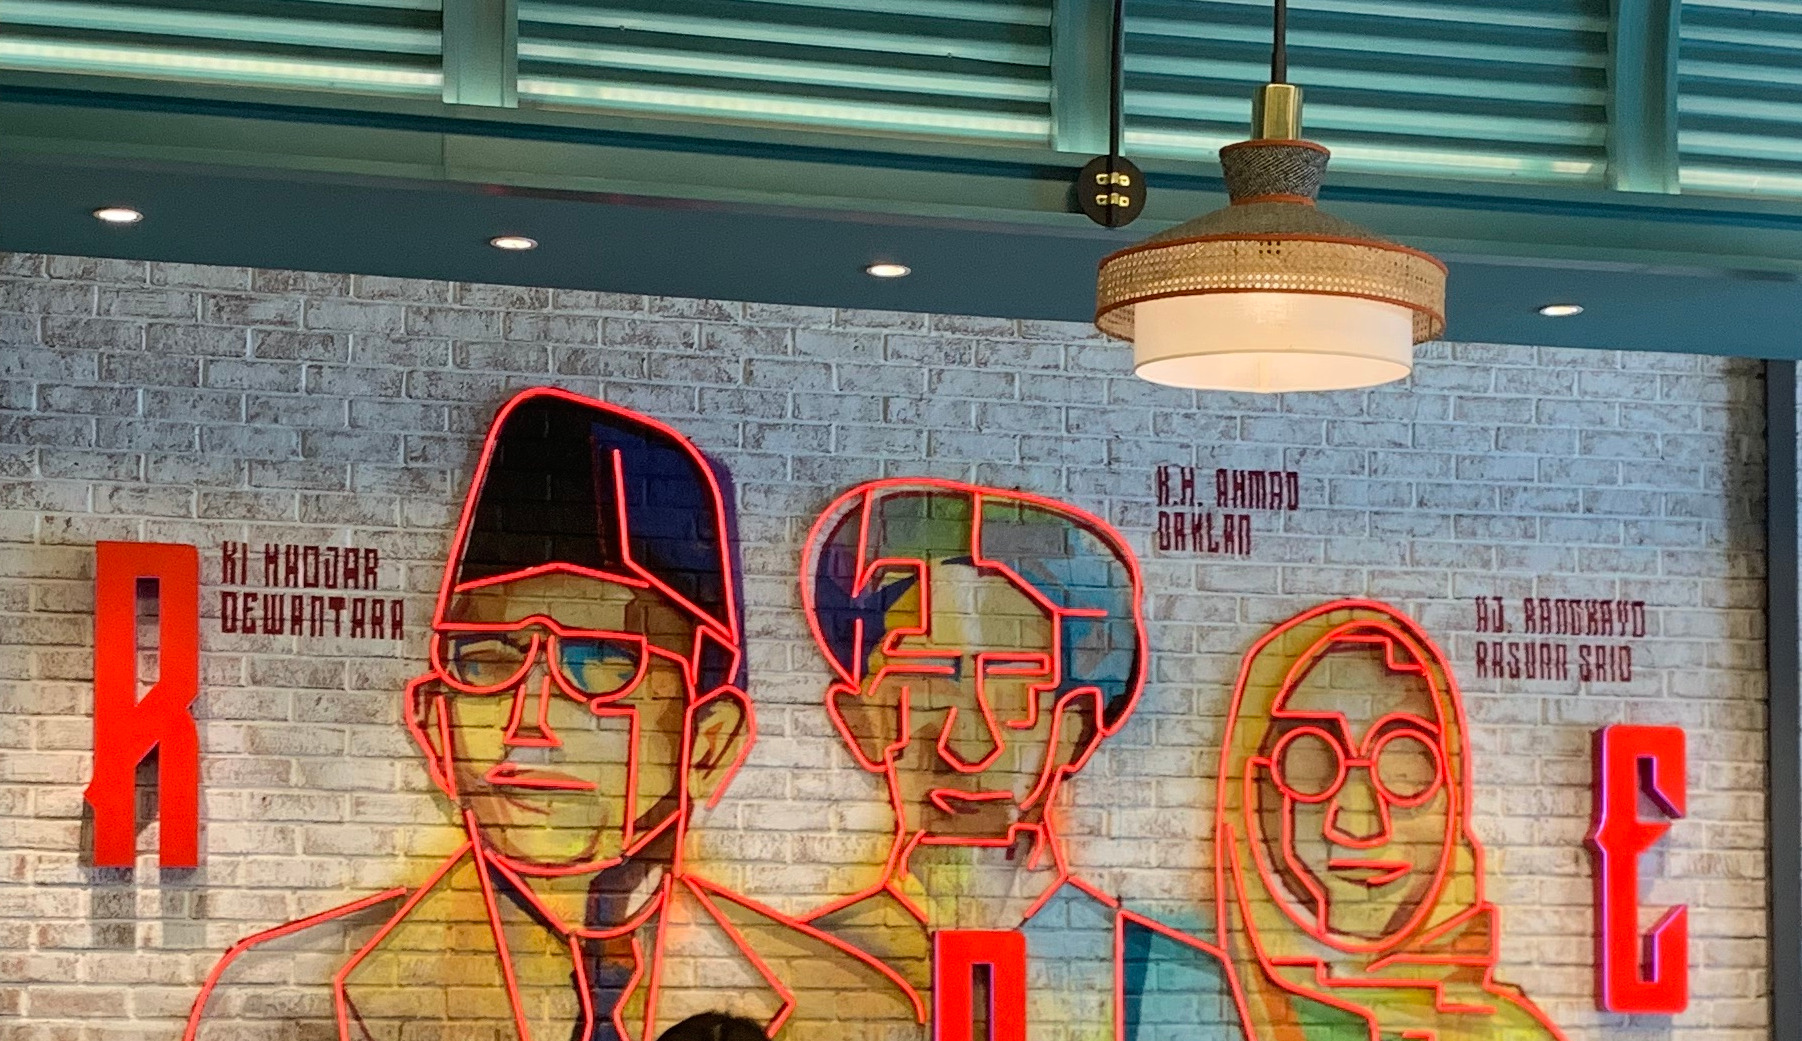 Image shows the mural wall of three monumental historical figures of Indonesia